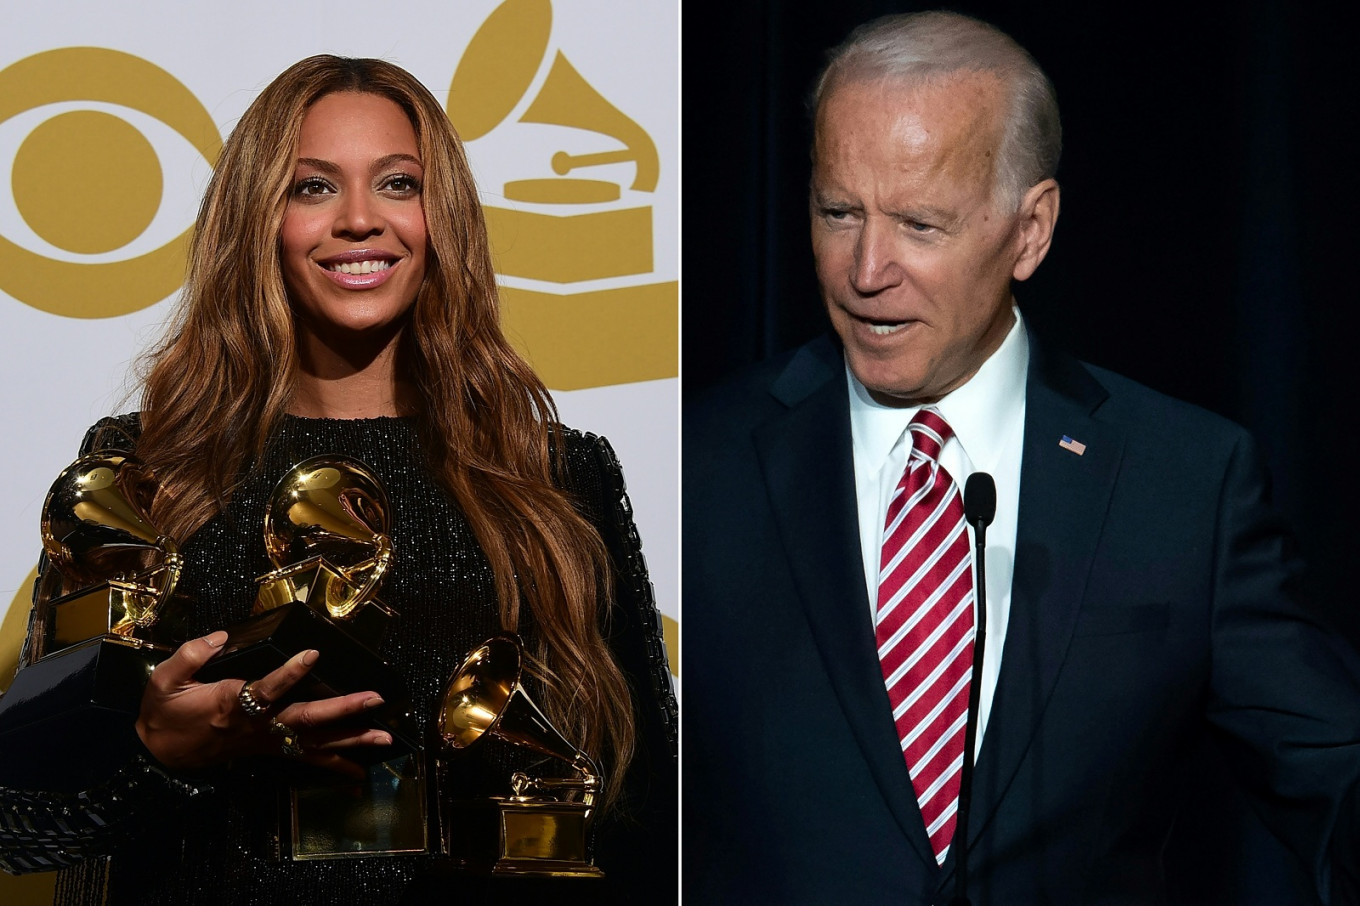 Too close for comfort? Biden, Beyonce spark personal space debate